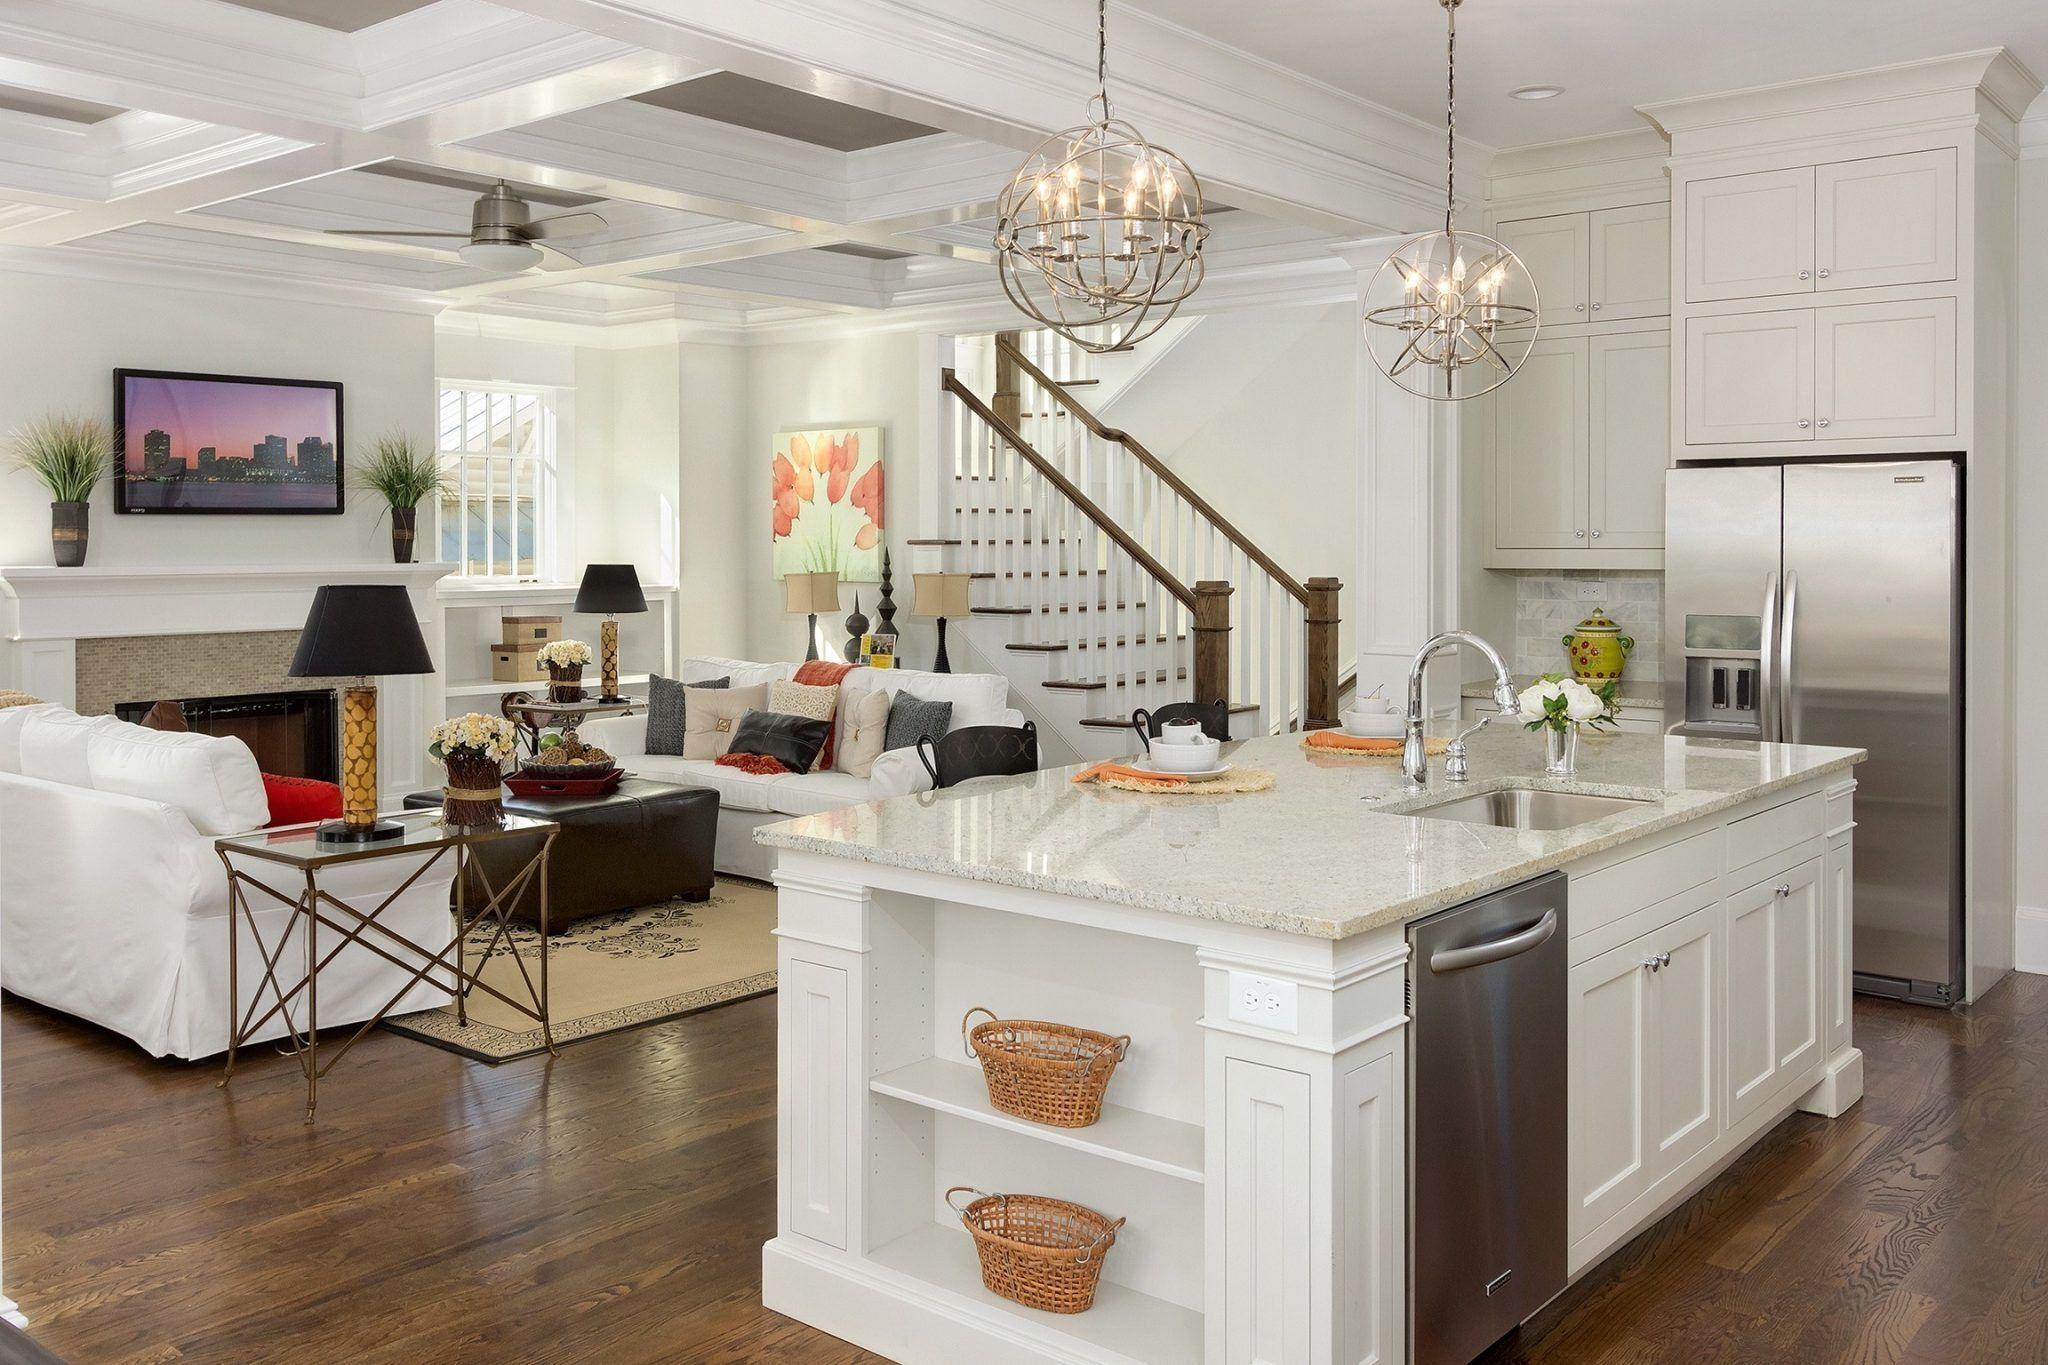 Cucina Amorosa Warehouse Import Chandelier Over Island Google Search Atherton Kitchen